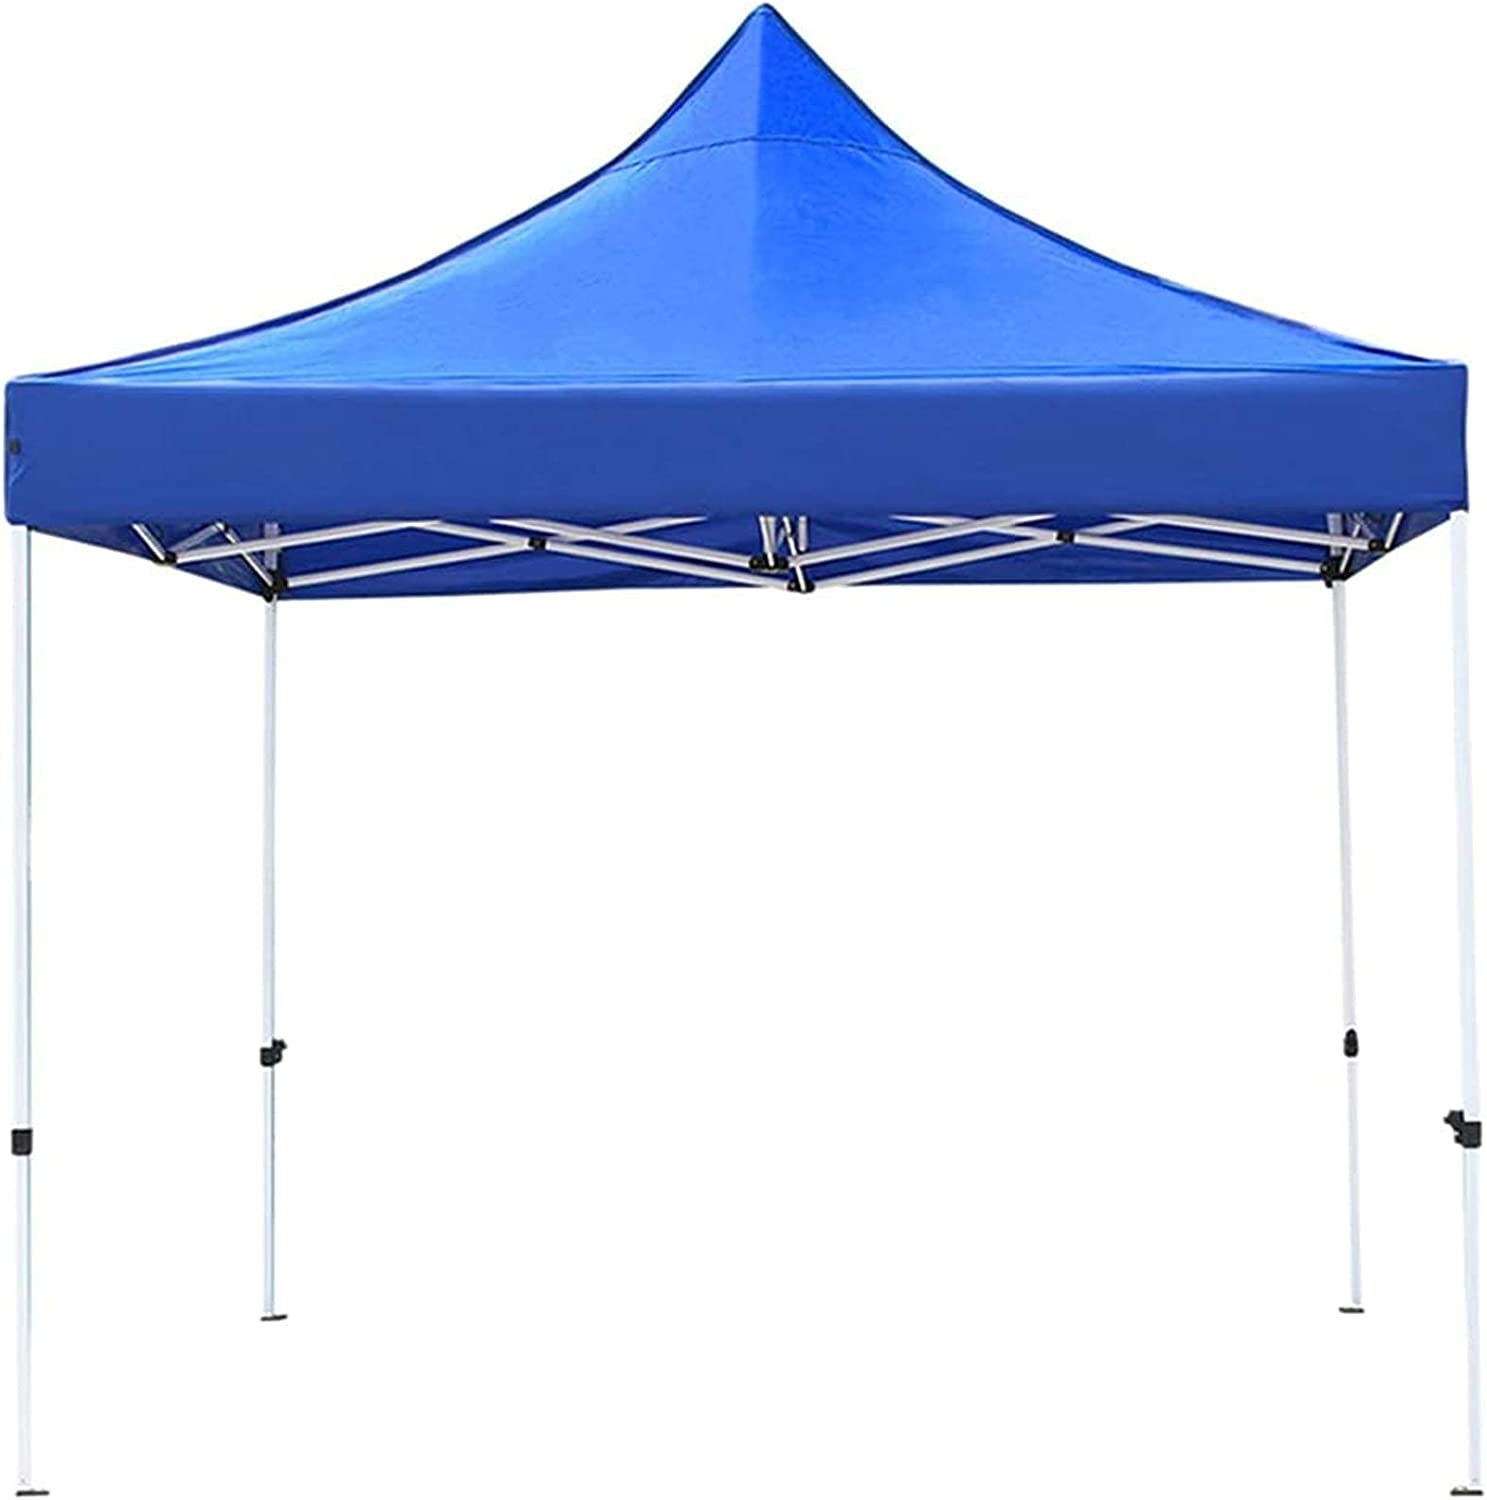 Furren Tents for Camping New popularity Thick High quality pop-up Waterproof Pavili Material